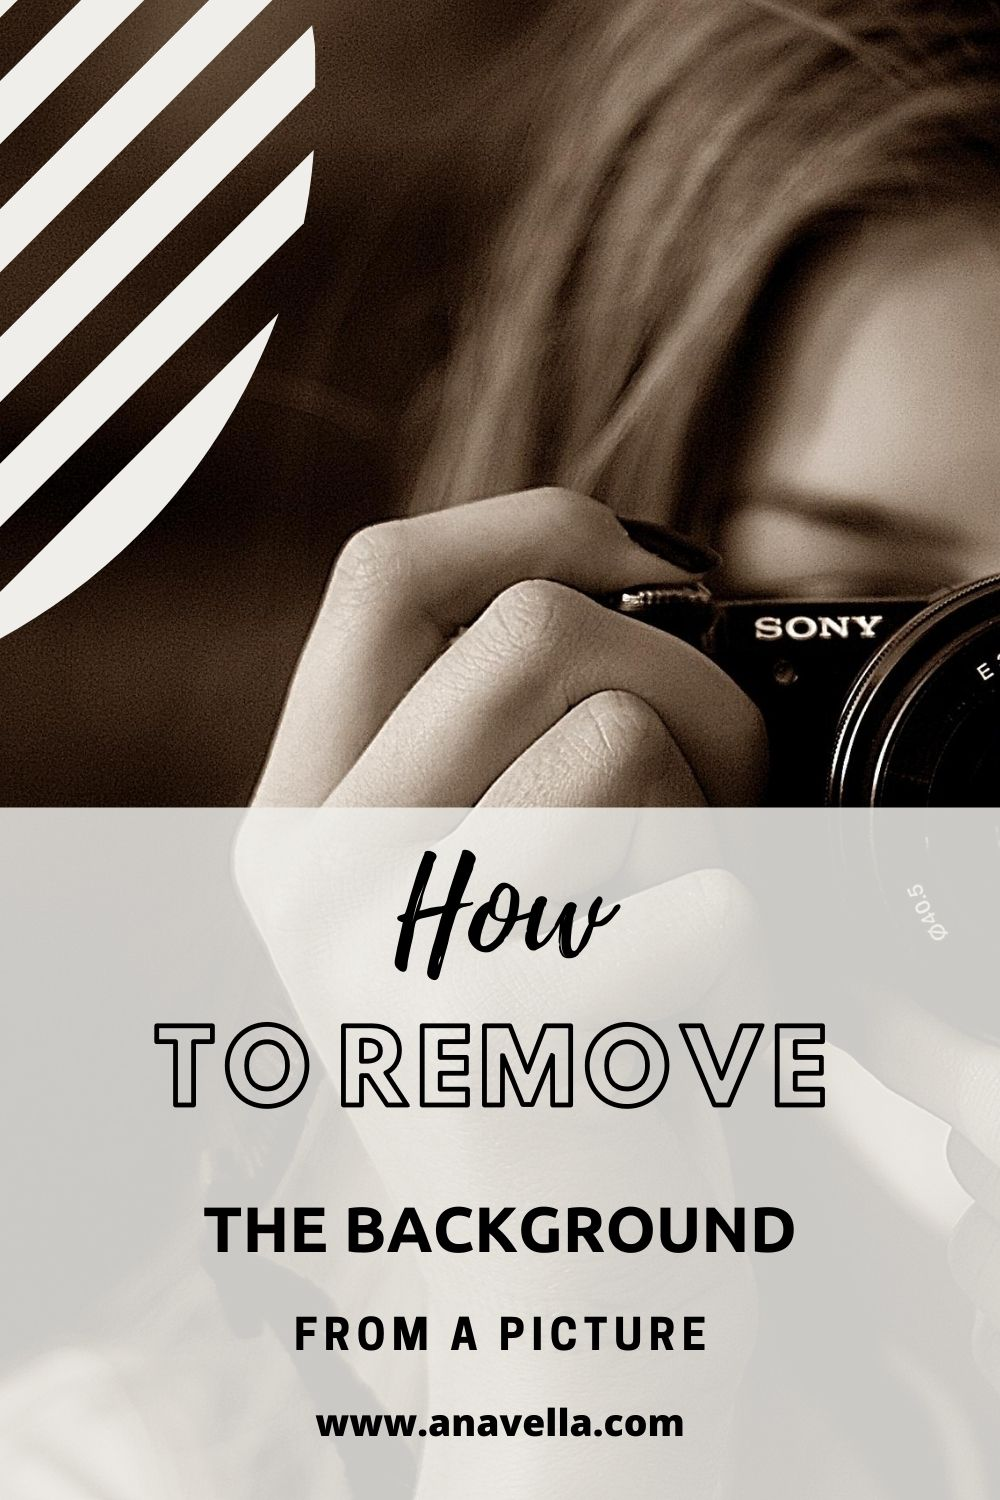 How to remove the background from a picture